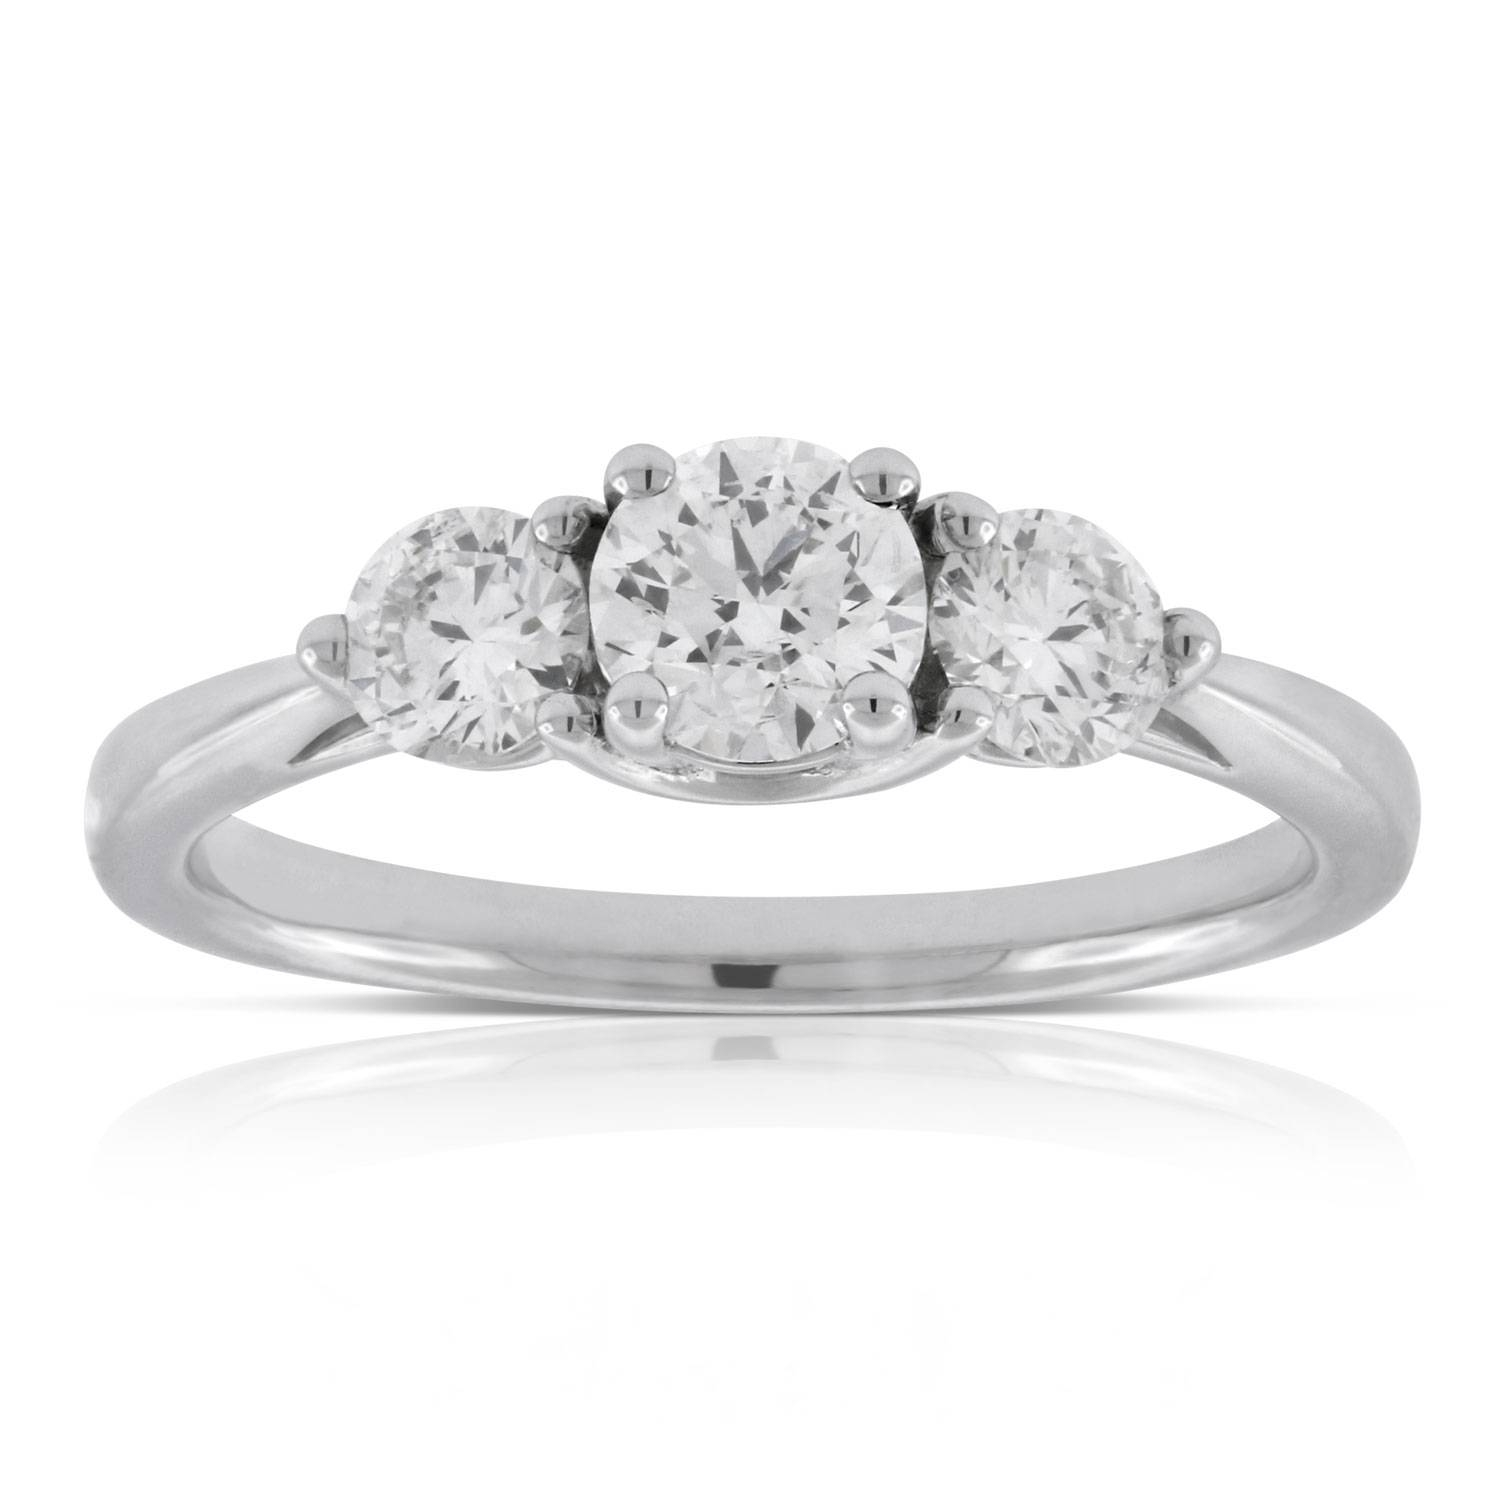 Ikuma Canadian Diamond Engagement 3 Stone Ring 14K | Ben Bridge With 3 Stone Platinum Engagement Rings (View 5 of 15)